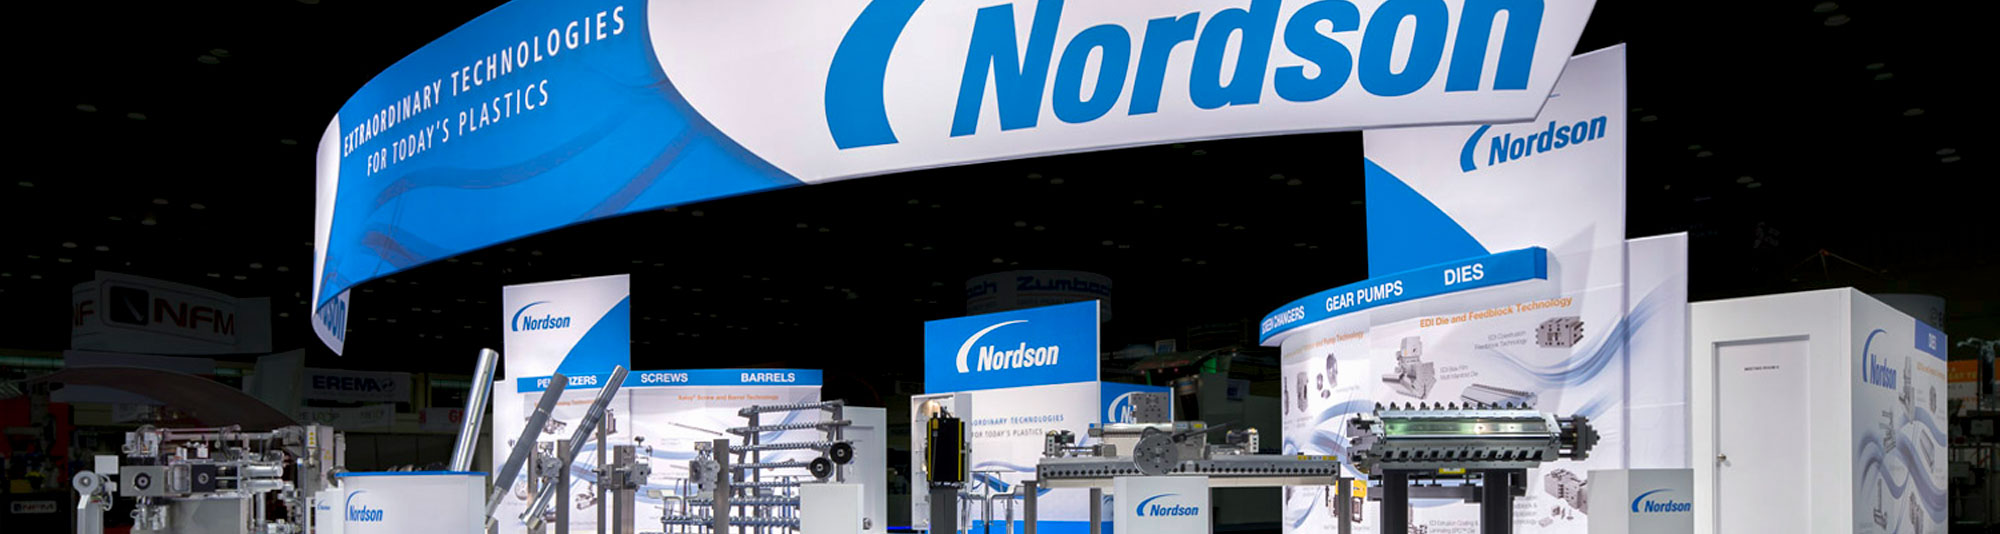 Nordson Tradeshow Booth